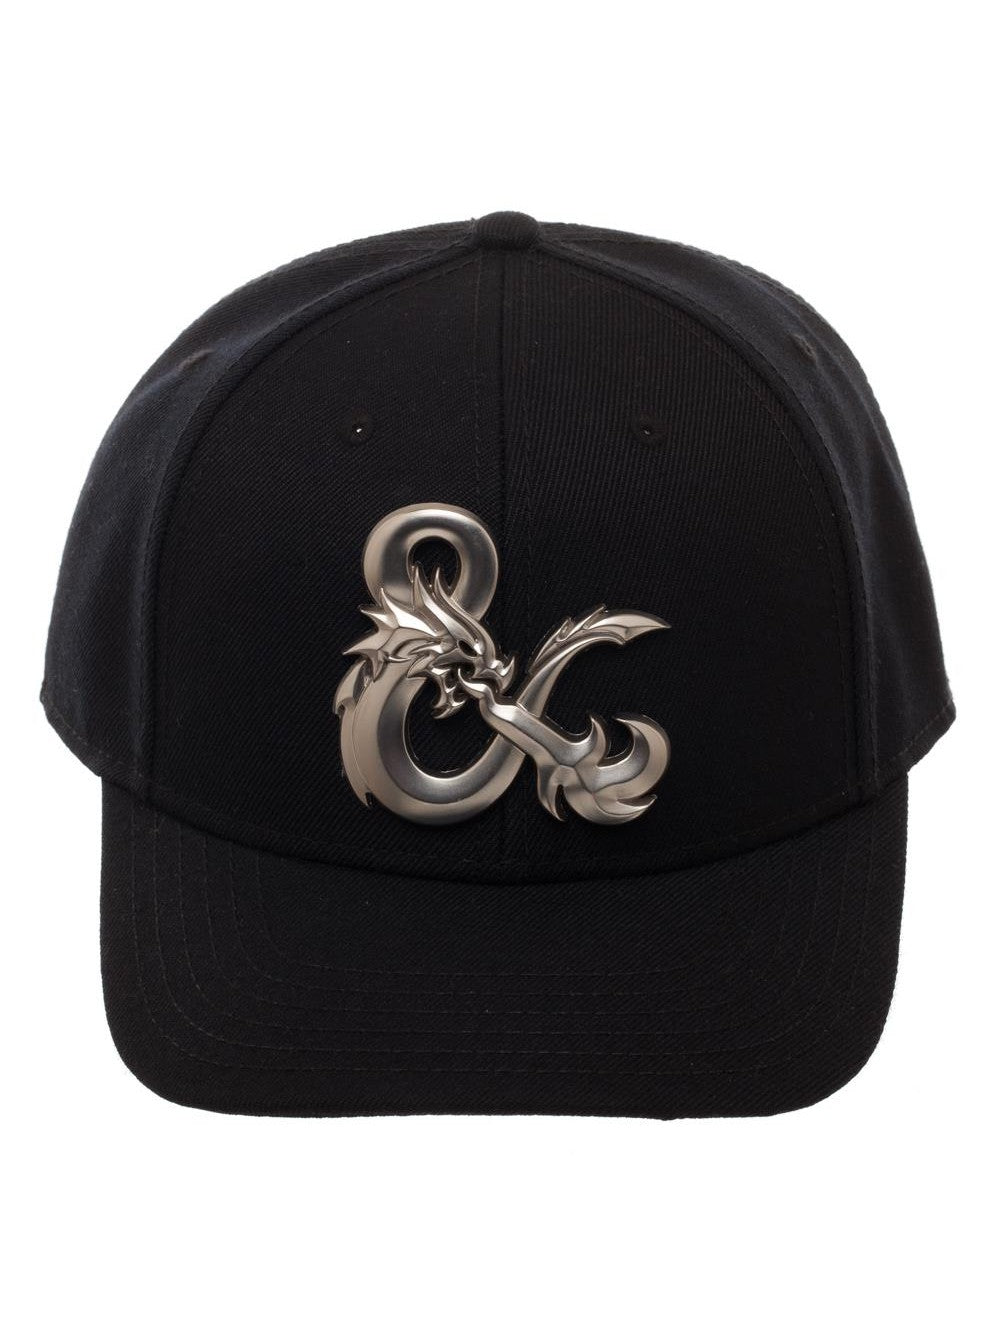 92d49dedc Dungeons and Dragons Ampersand Black Curved Snapback Hat